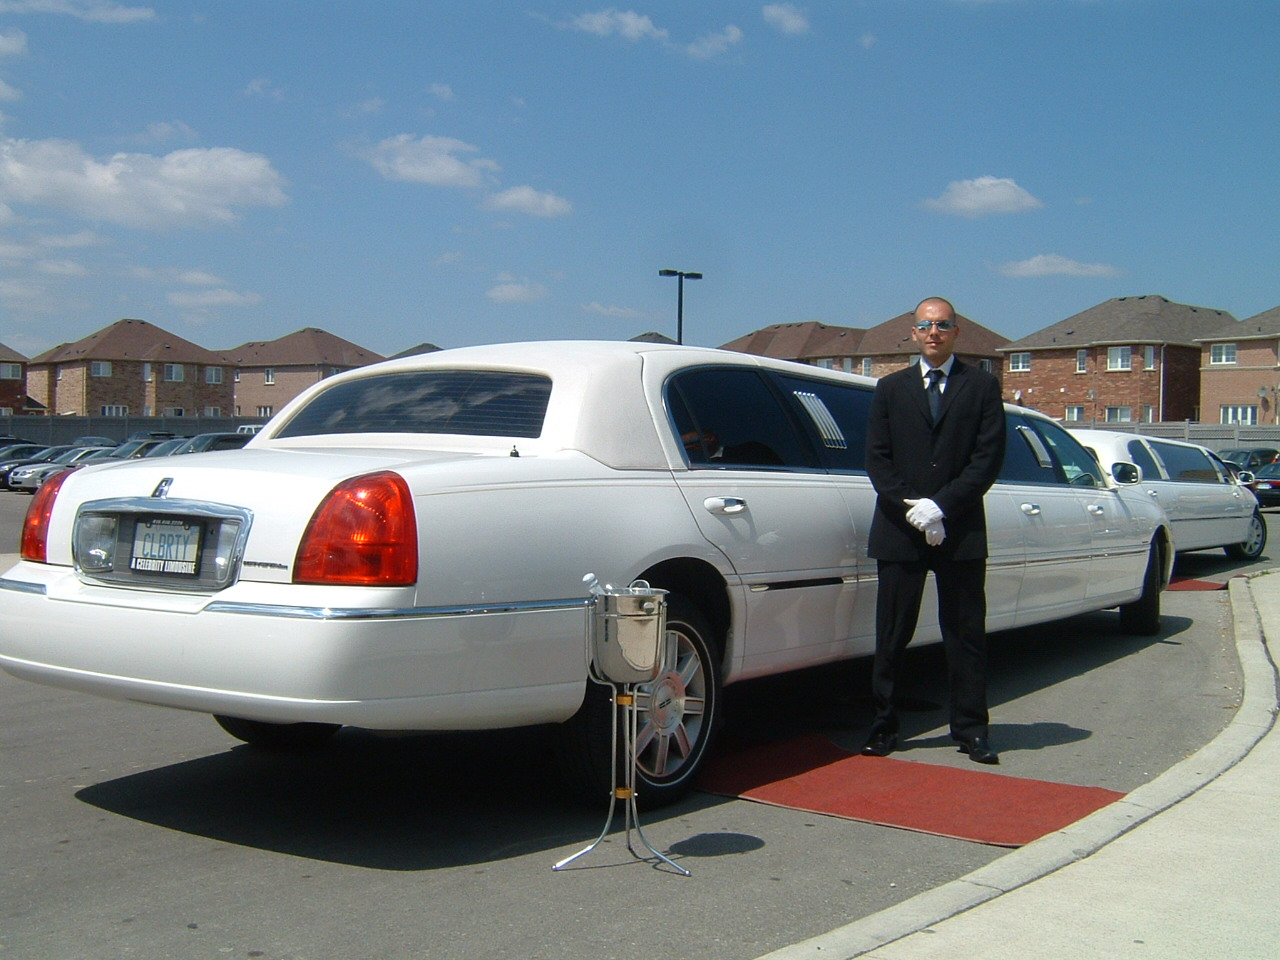 Wedding Day Transportation - Limousine